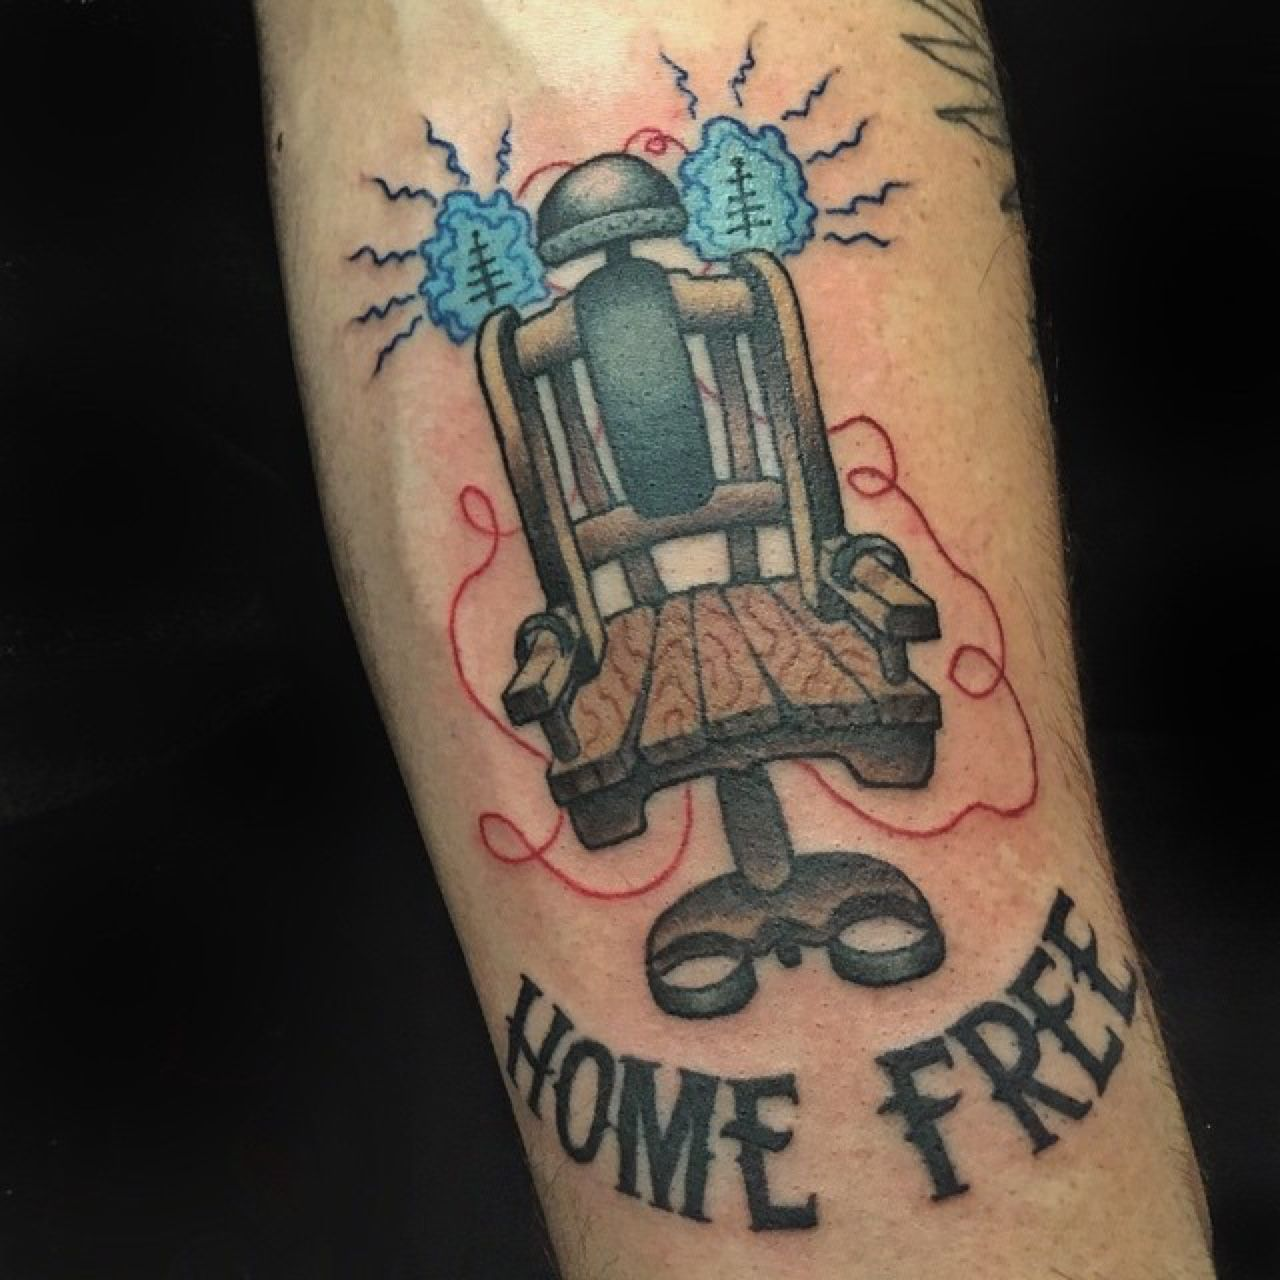 Electric chair tattoo - Tattoo Electric Chair